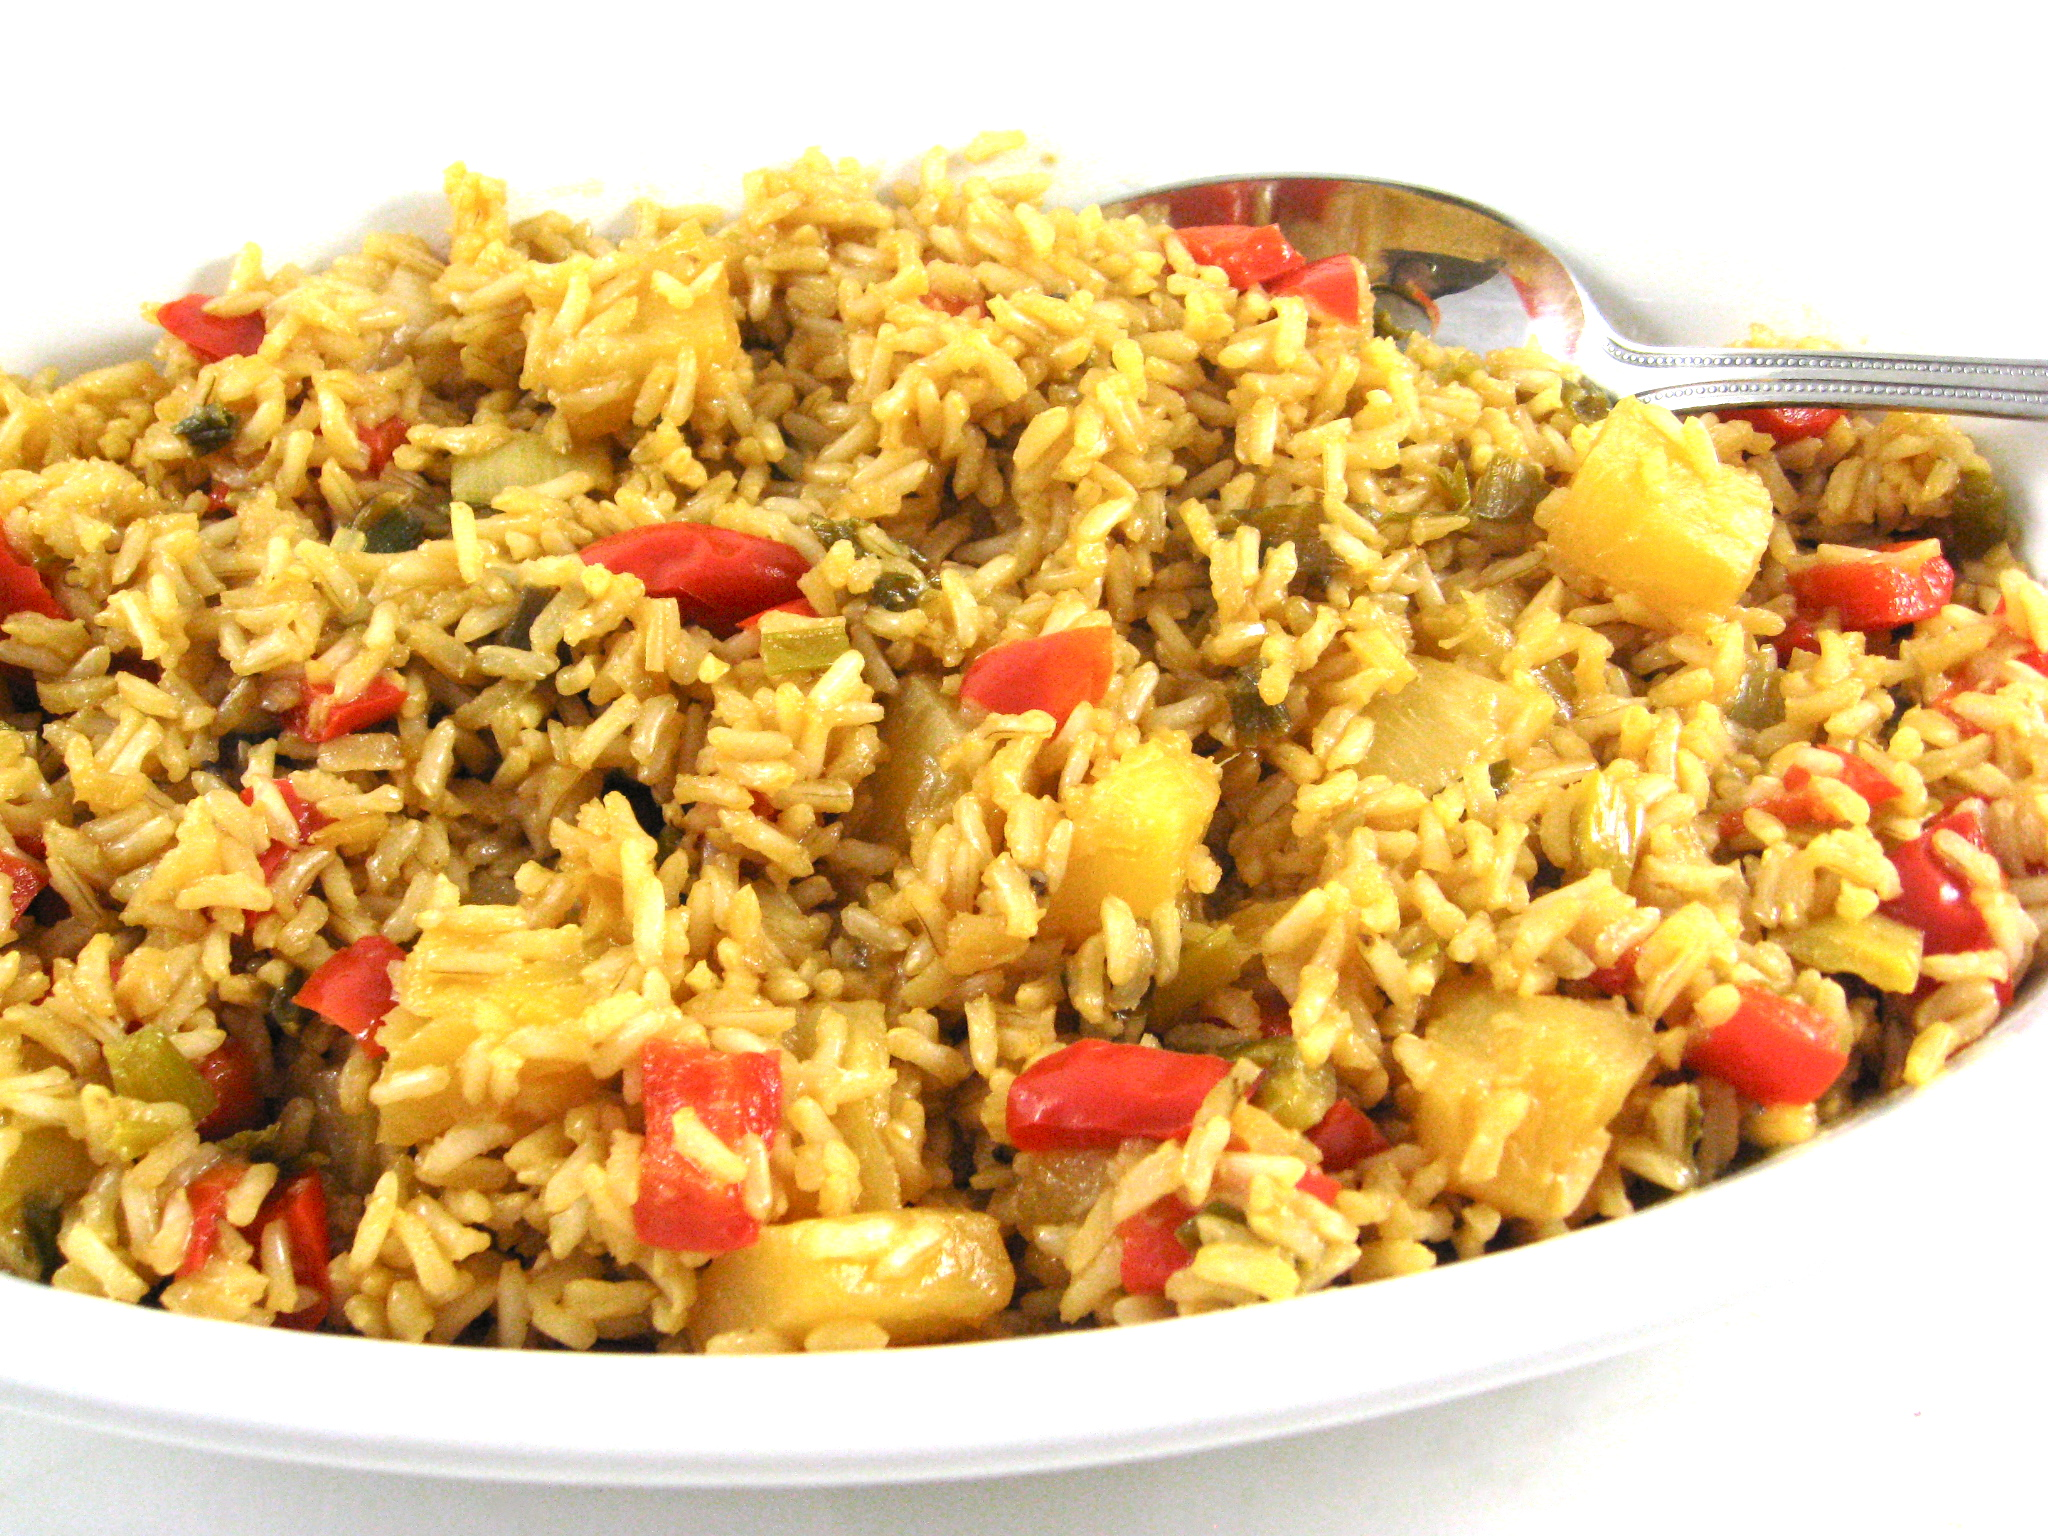 Simple To Make And Very Healthy, Pineapple Brown Rice